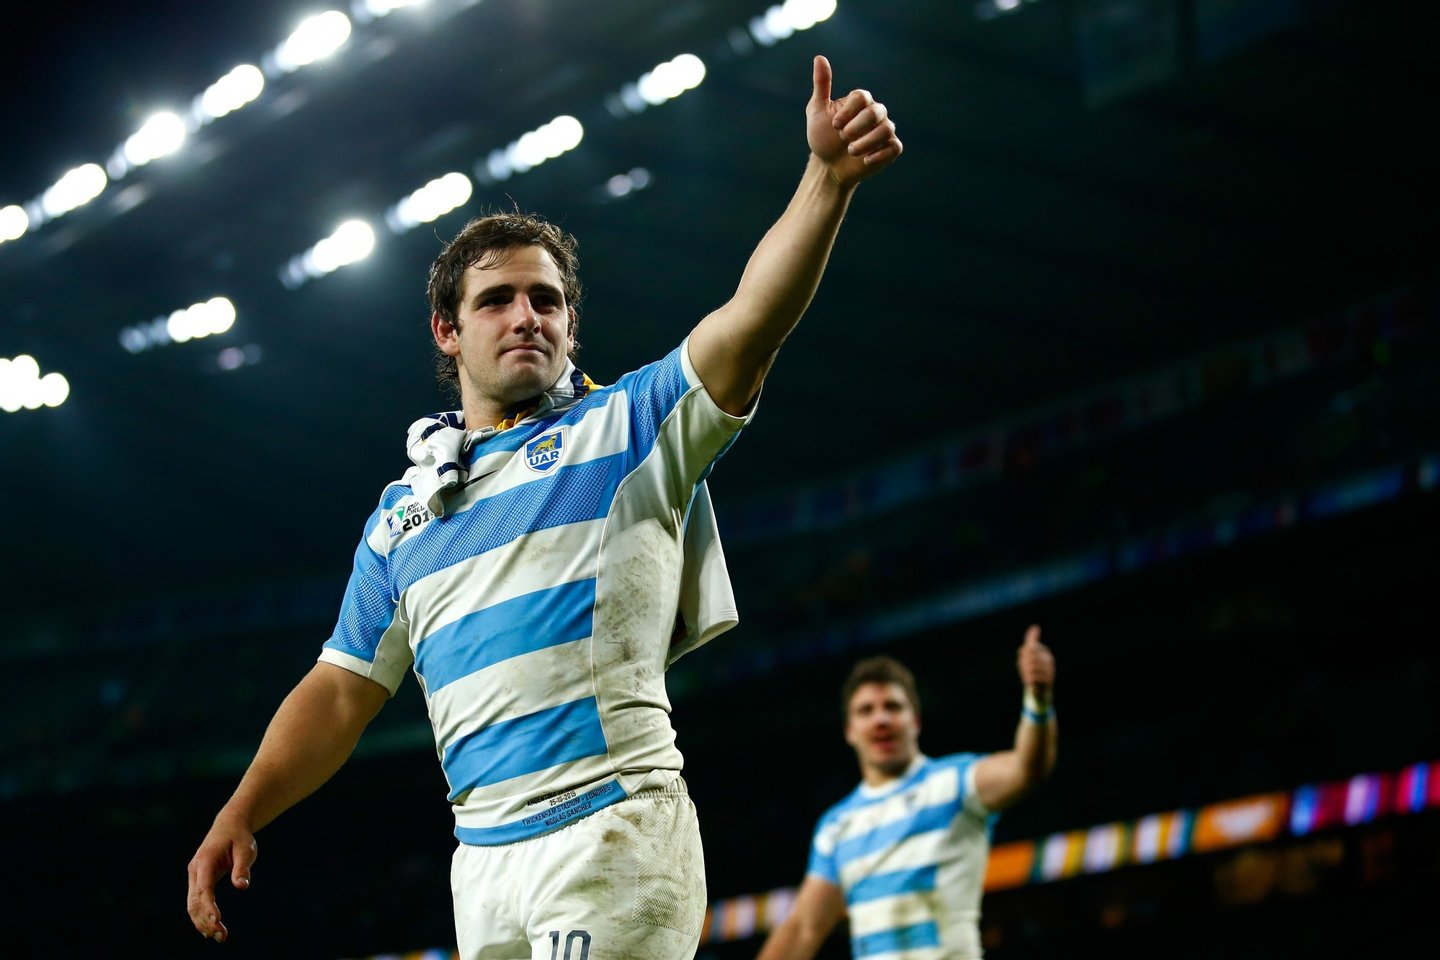 LONDON, ENGLAND - OCTOBER 25: Nicolas Sanchez of Argentina walks around the pitch dejected after losing the 2015 Rugby World Cup Semi Final match between Argentina and Australia at Twickenham Stadium on October 25, 2015 in London, United Kingdom. (Photo by Mike Hewitt/Getty Images)